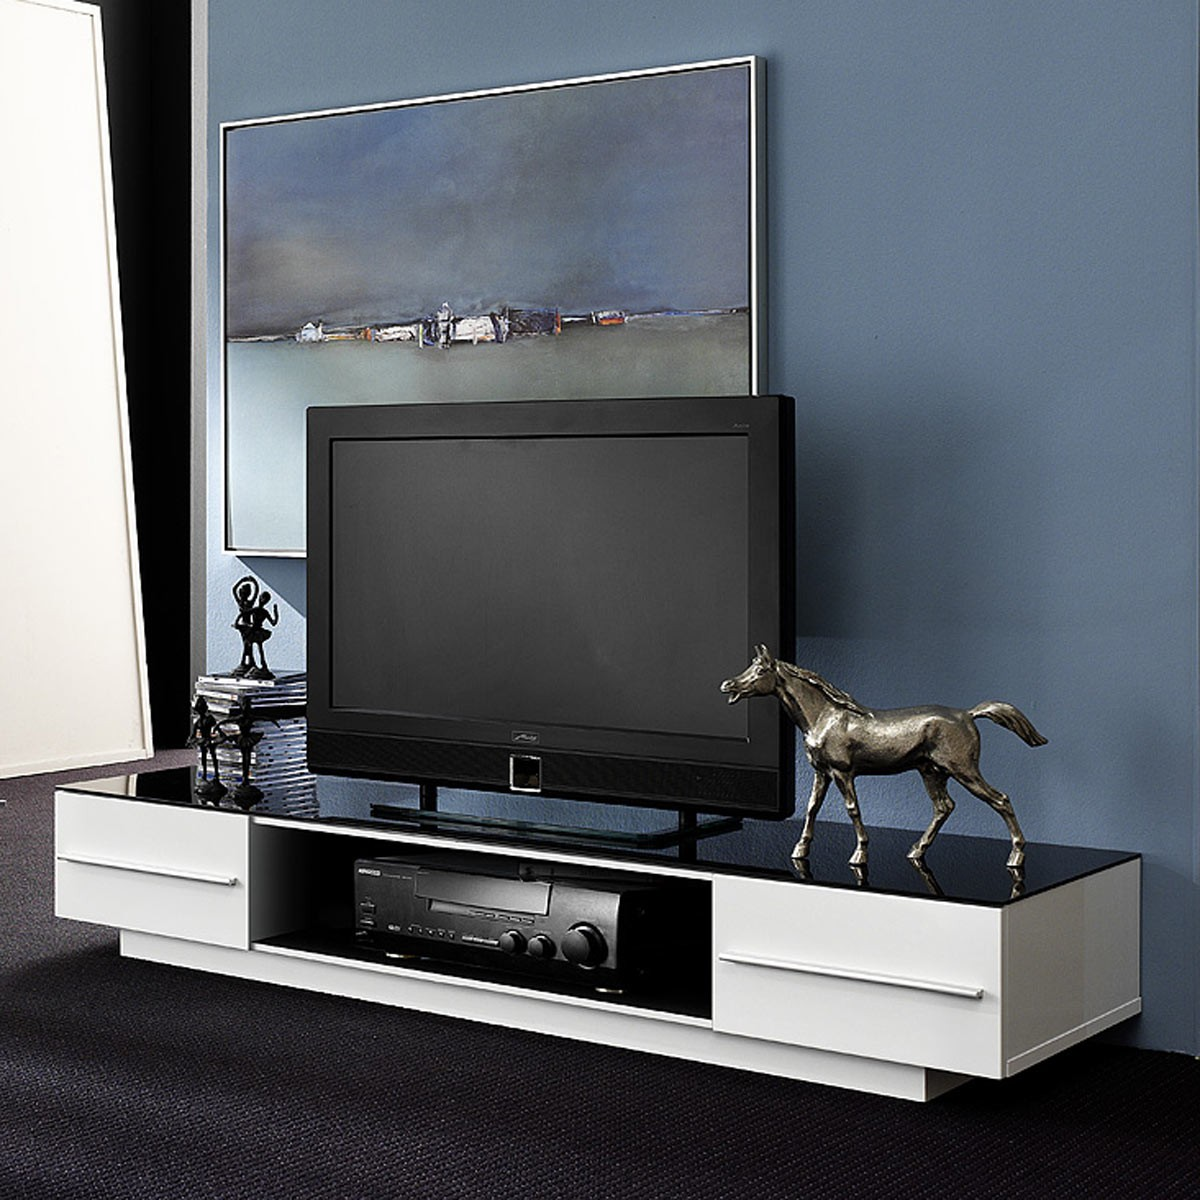 lowboard lara in weiss mit weissglas b2b trade. Black Bedroom Furniture Sets. Home Design Ideas